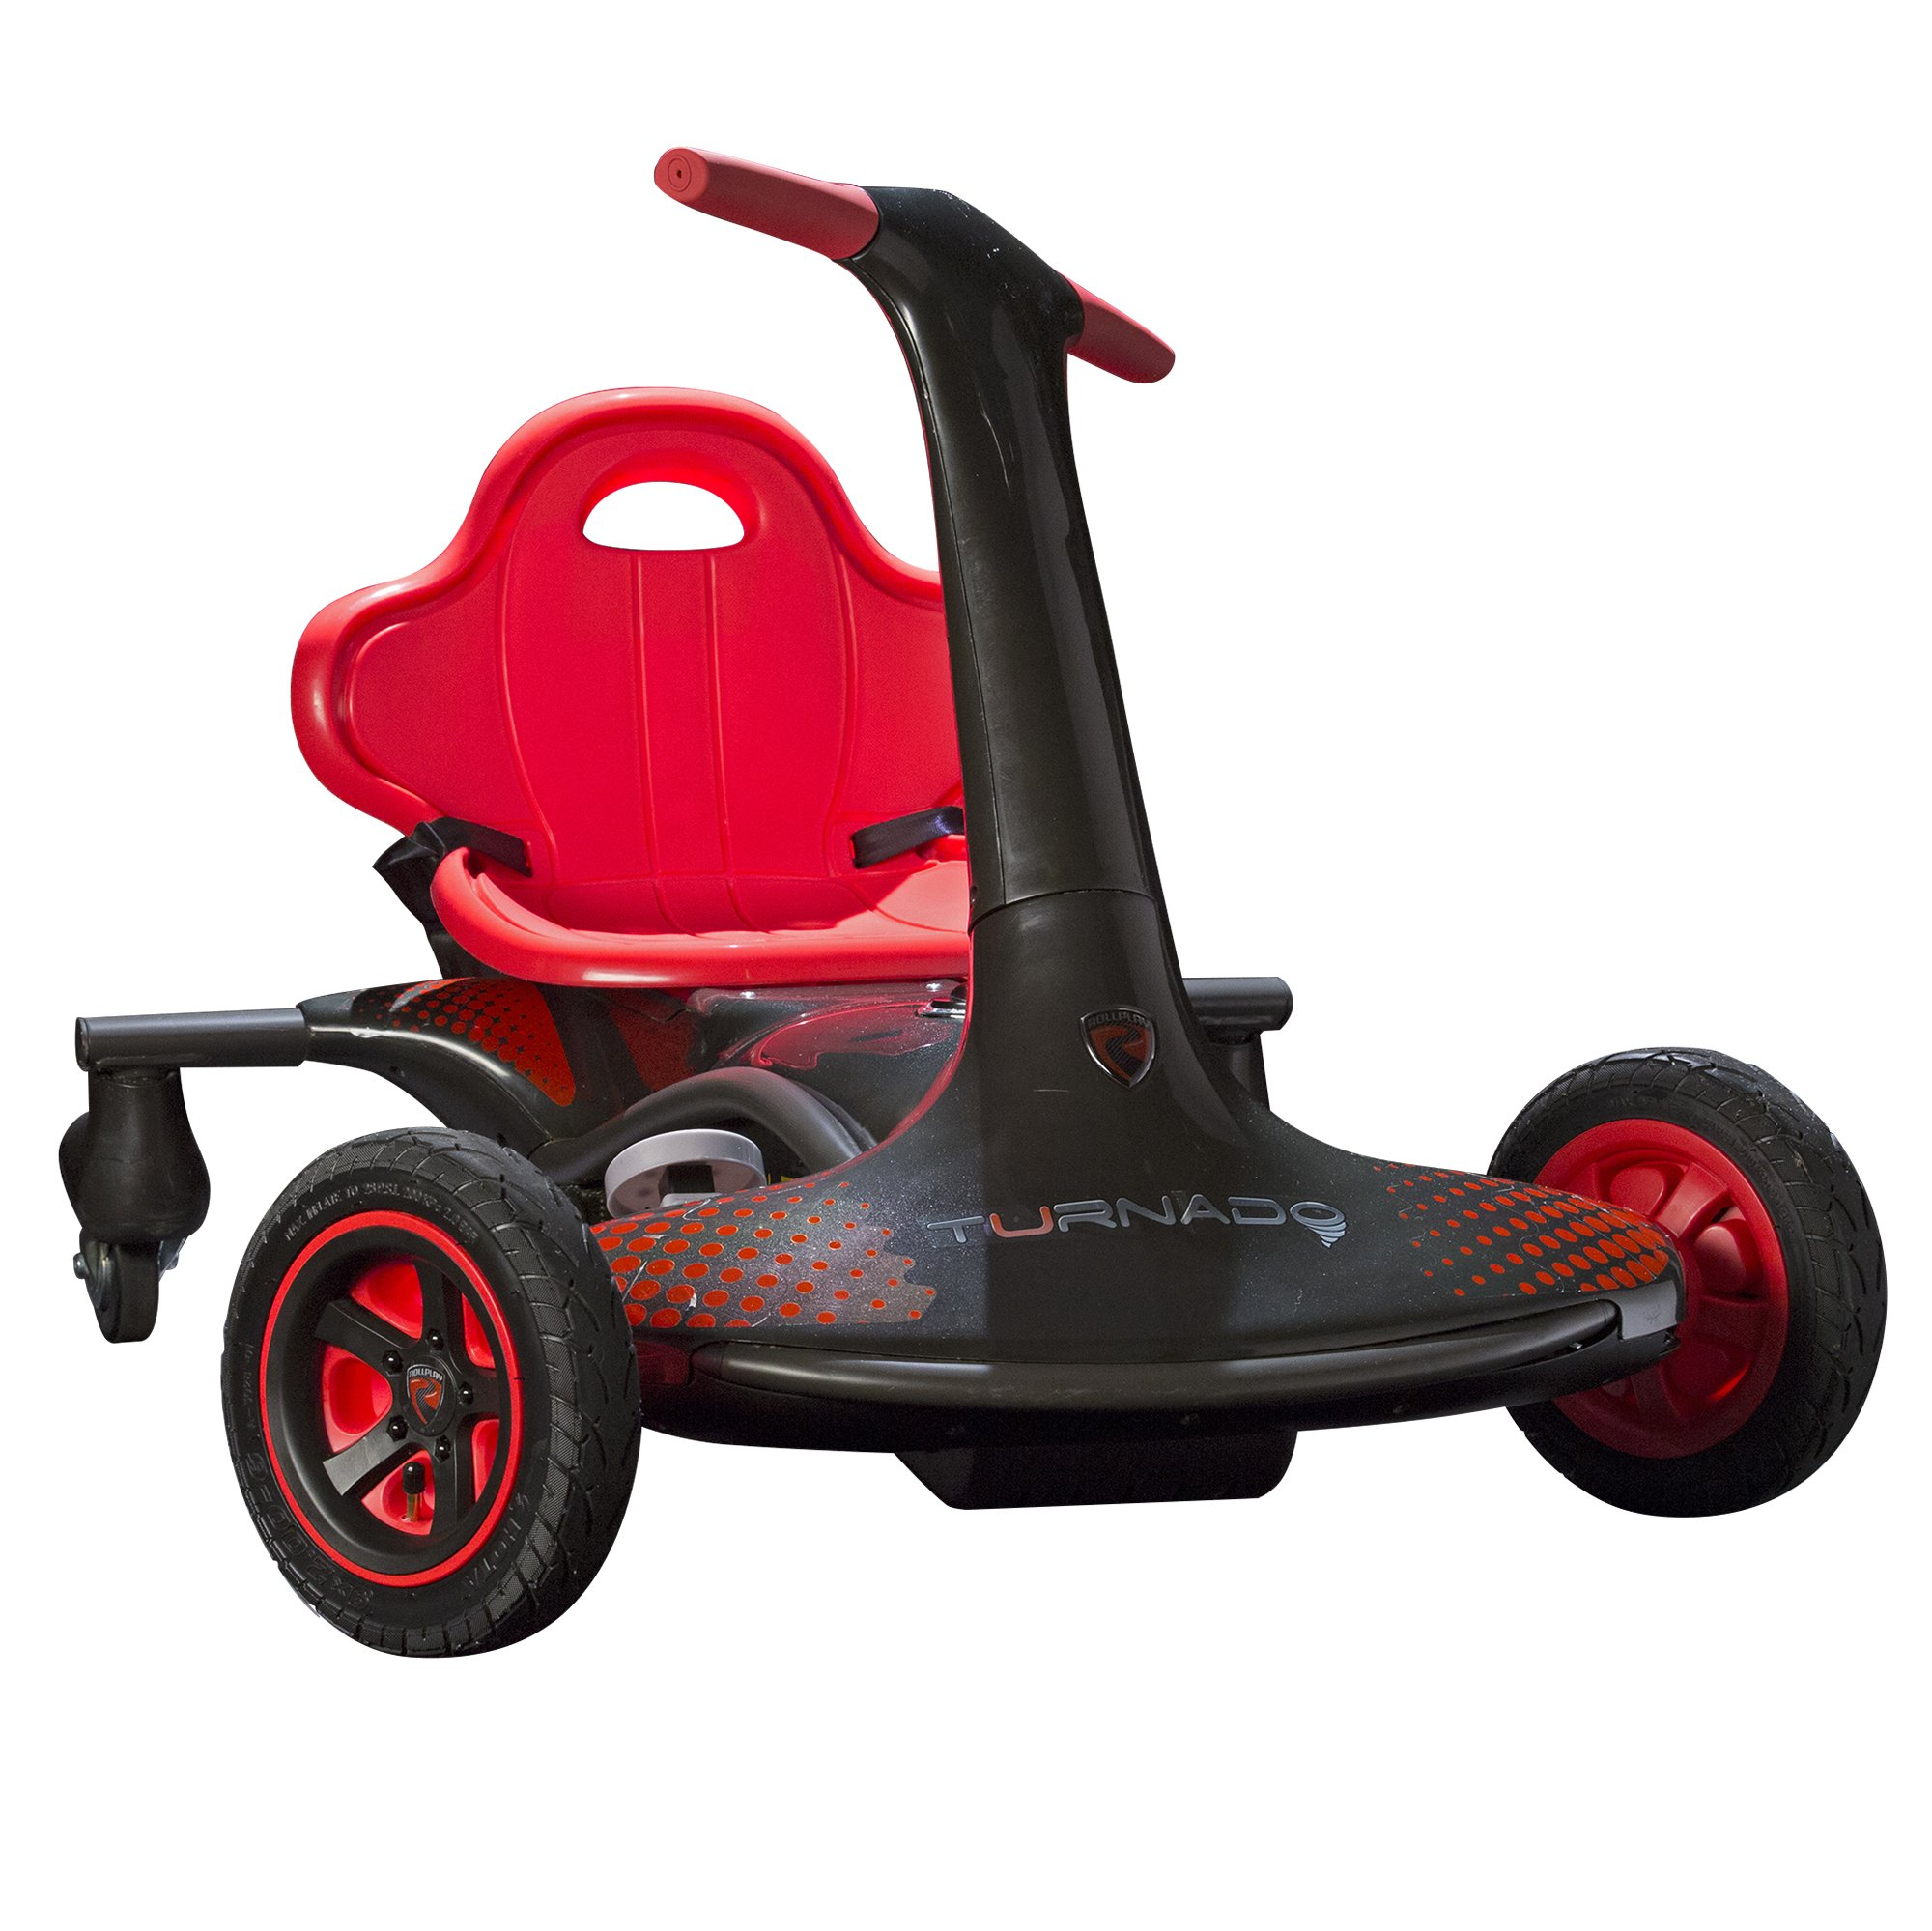 Rollplay Turnado 24-Volt Battery-Powered Ride-On by Rollplay (Image #2)